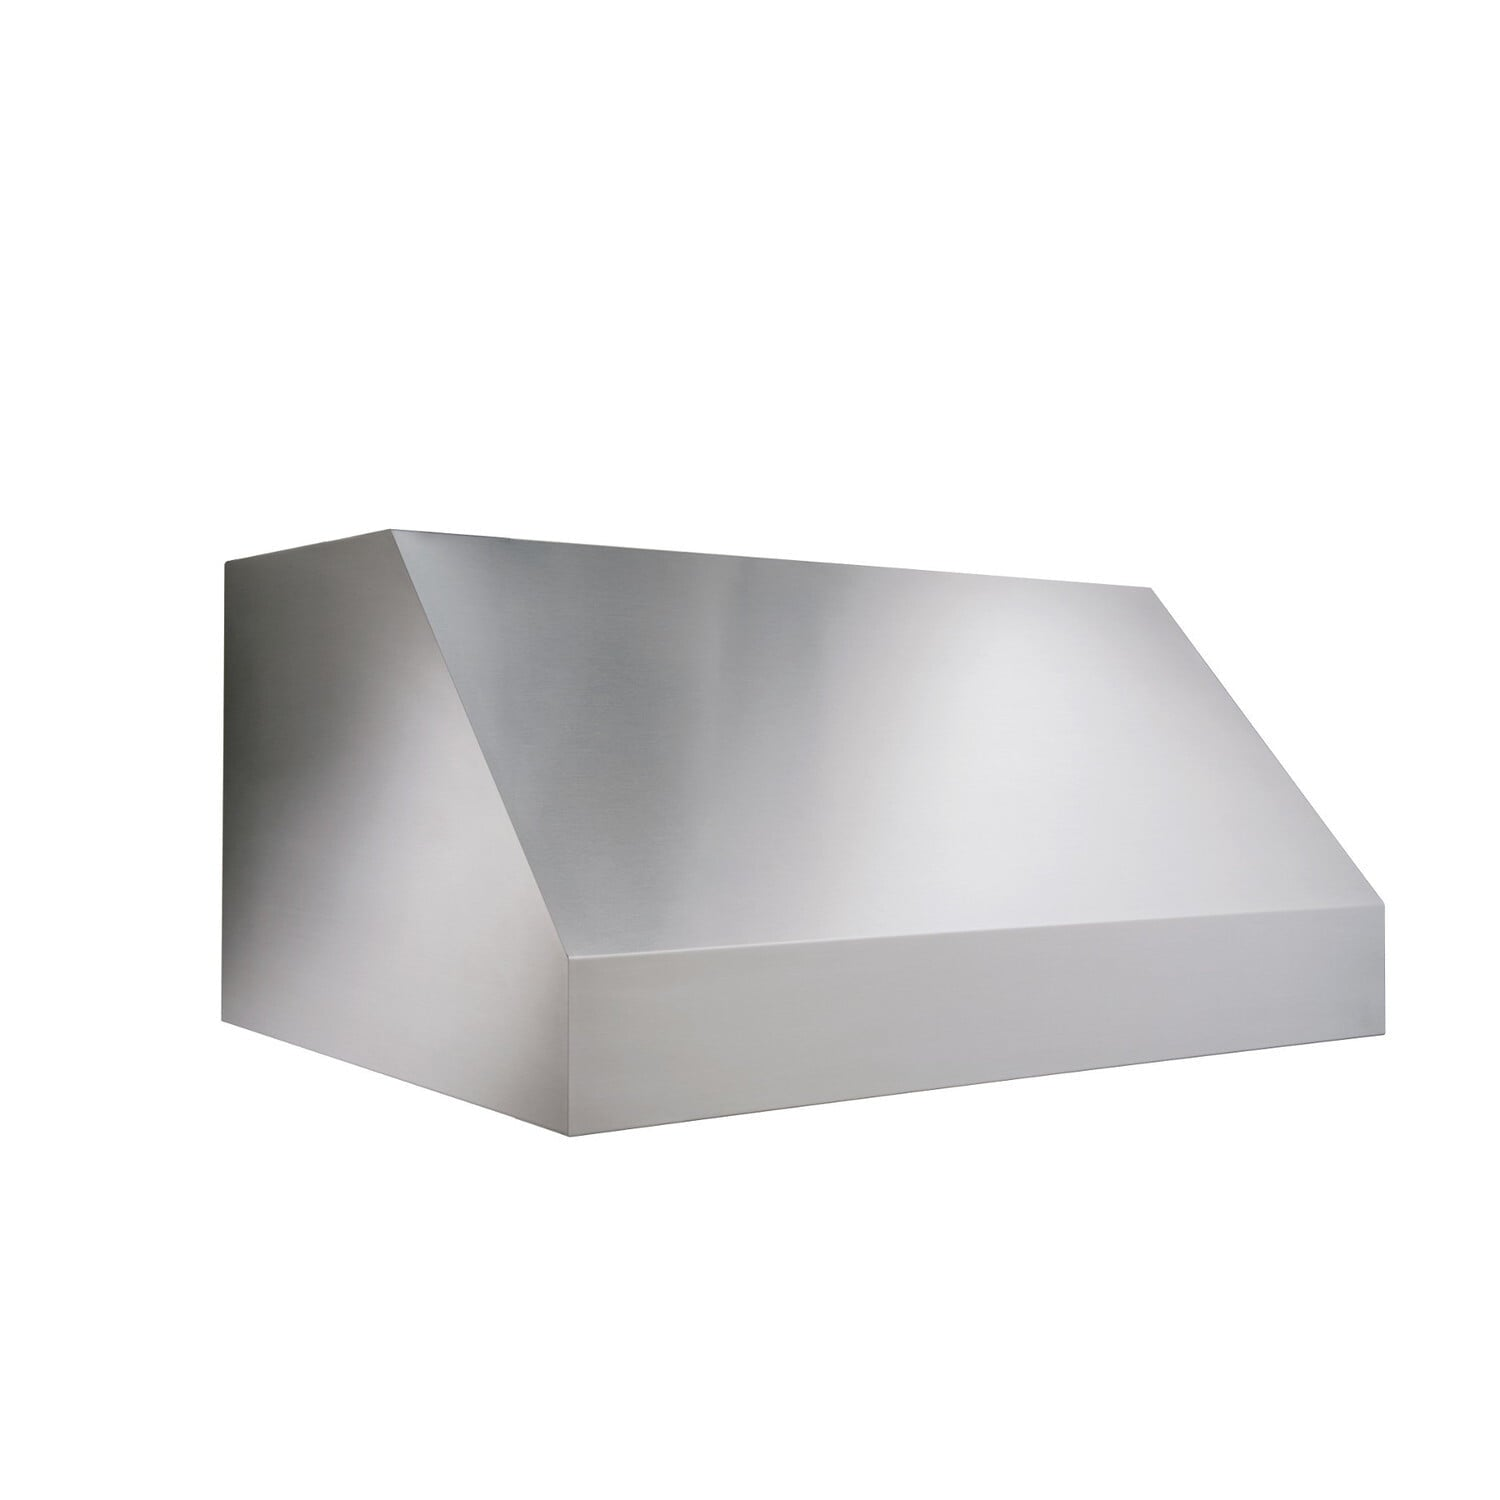 Load image into Gallery viewer, Broan EPD6160SS Broan® 60-Inch Pro-Style Outdoor Range Hood, 1100 Cfm, Stainless Steel